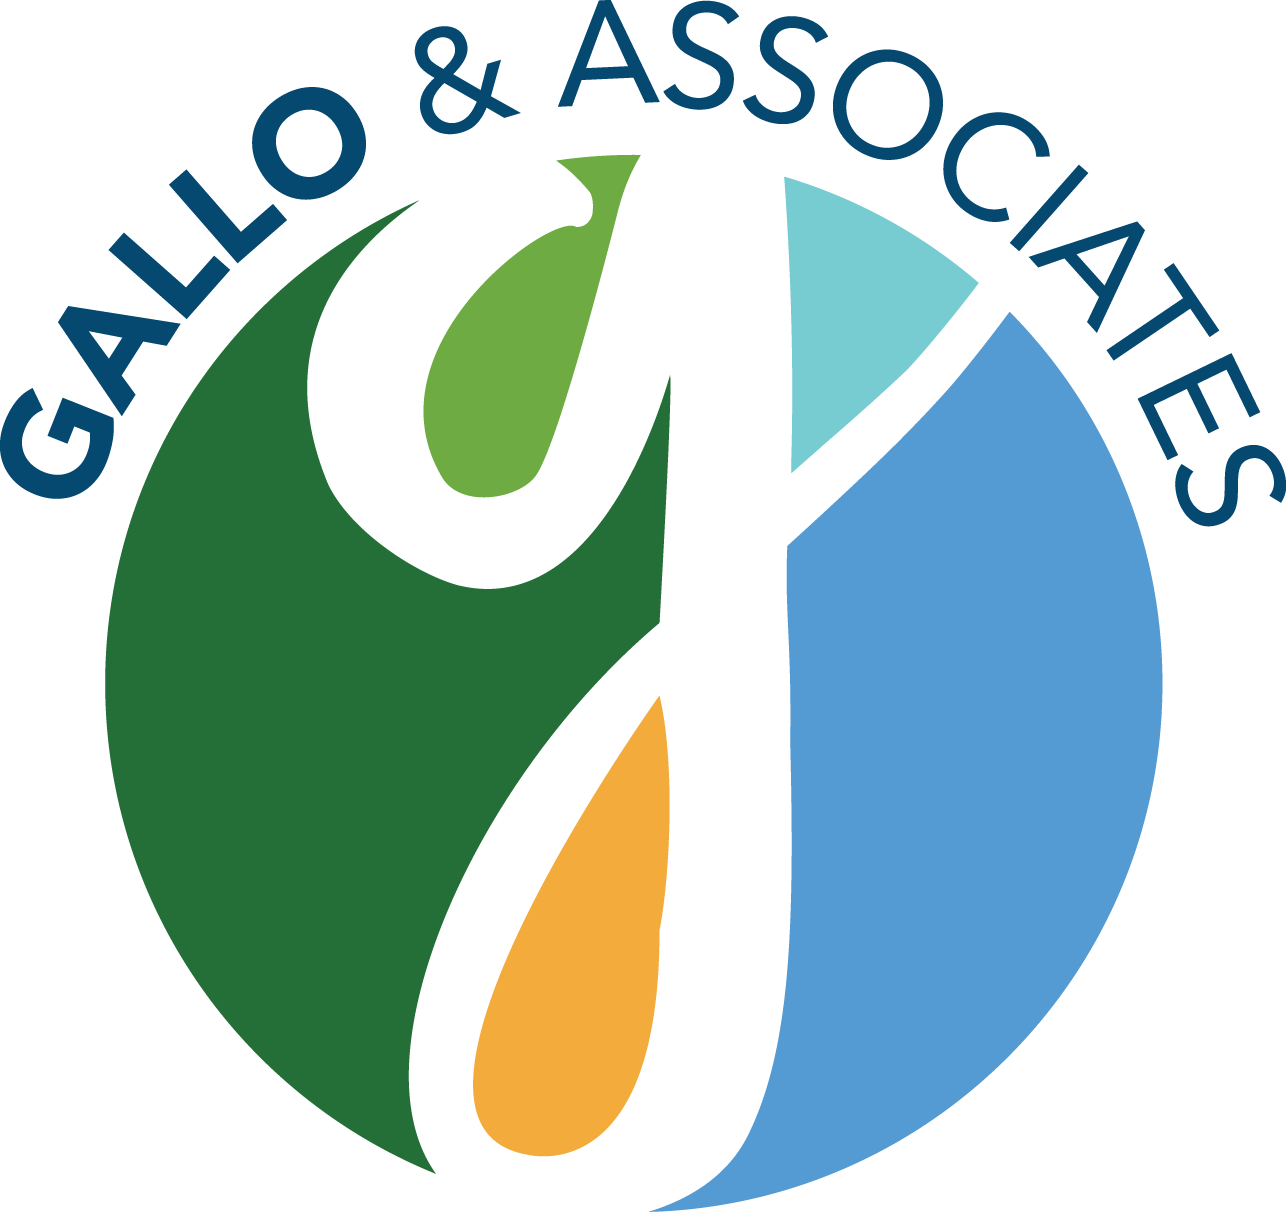 Phil Gallo & Associates LLC